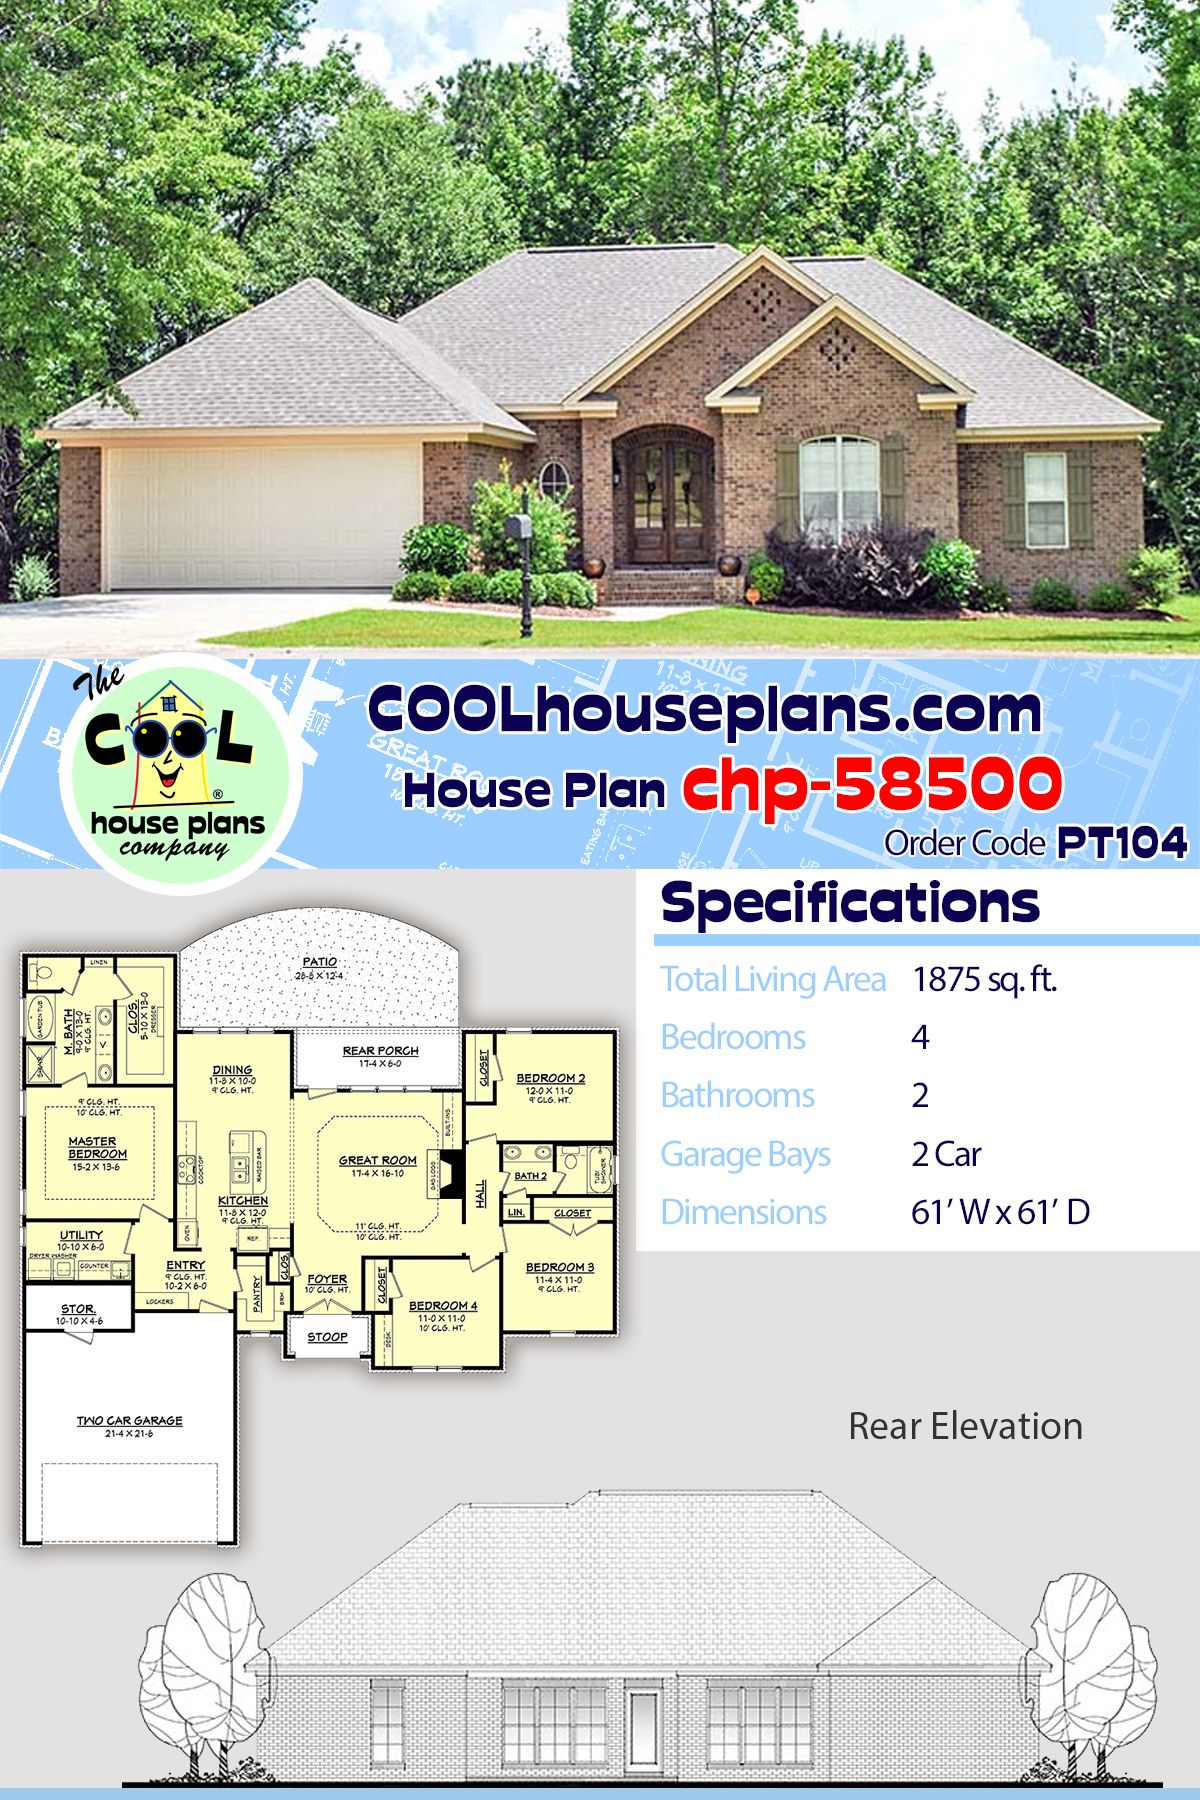 Traditional Style House Plan 51904 With 4 Bed 2 Bath 2 Car Garage House Plans Traditional Brick Home Best House Plans